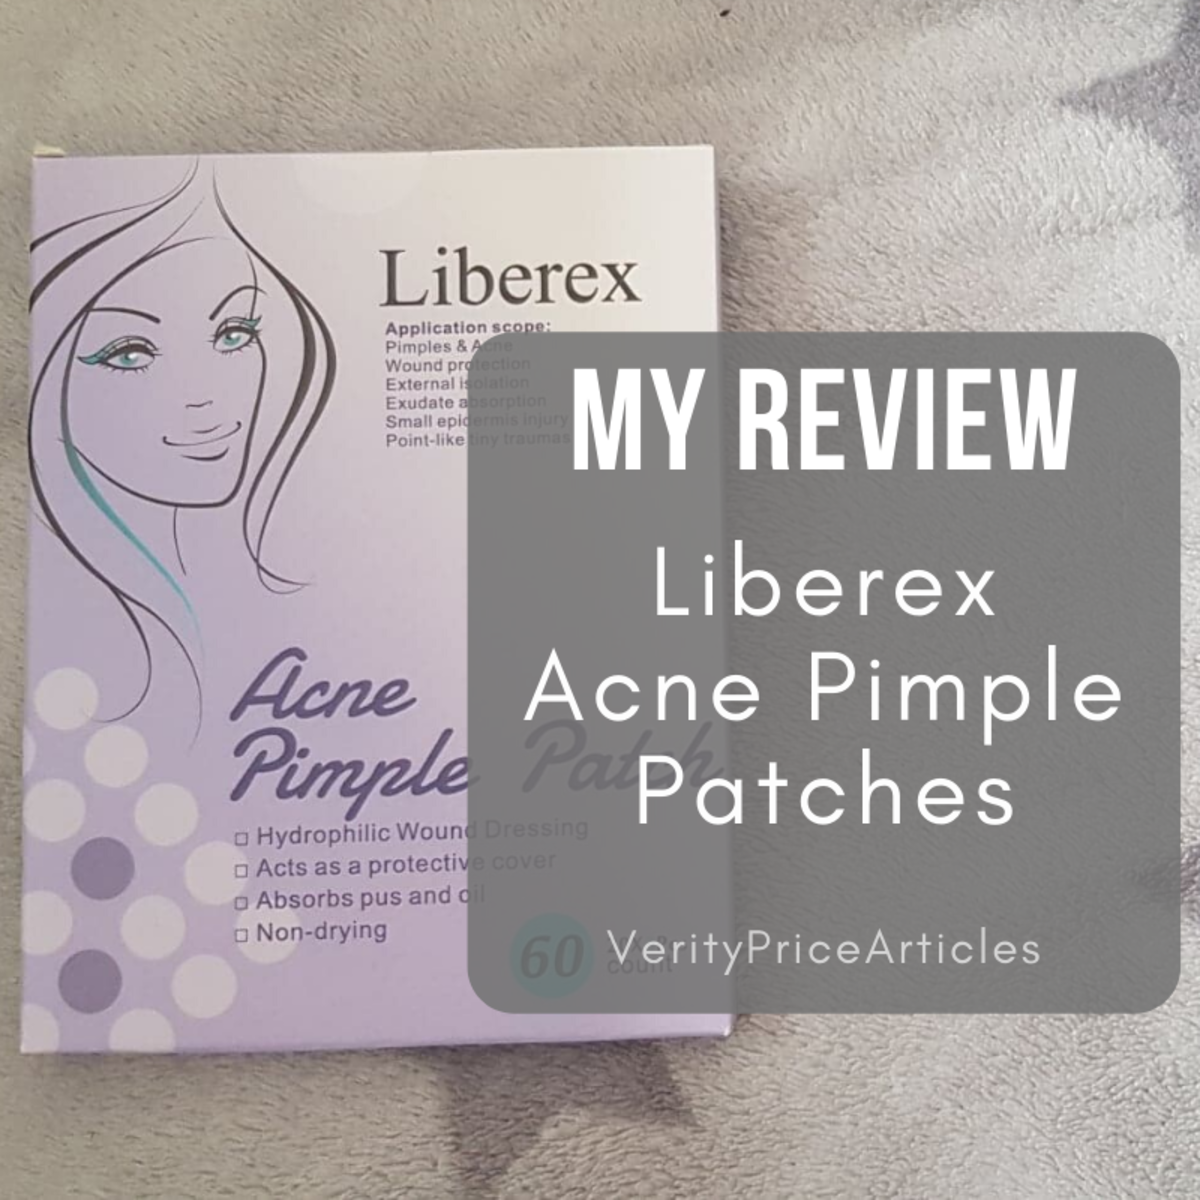 My Review of the Liberex Acne Pimple Patches